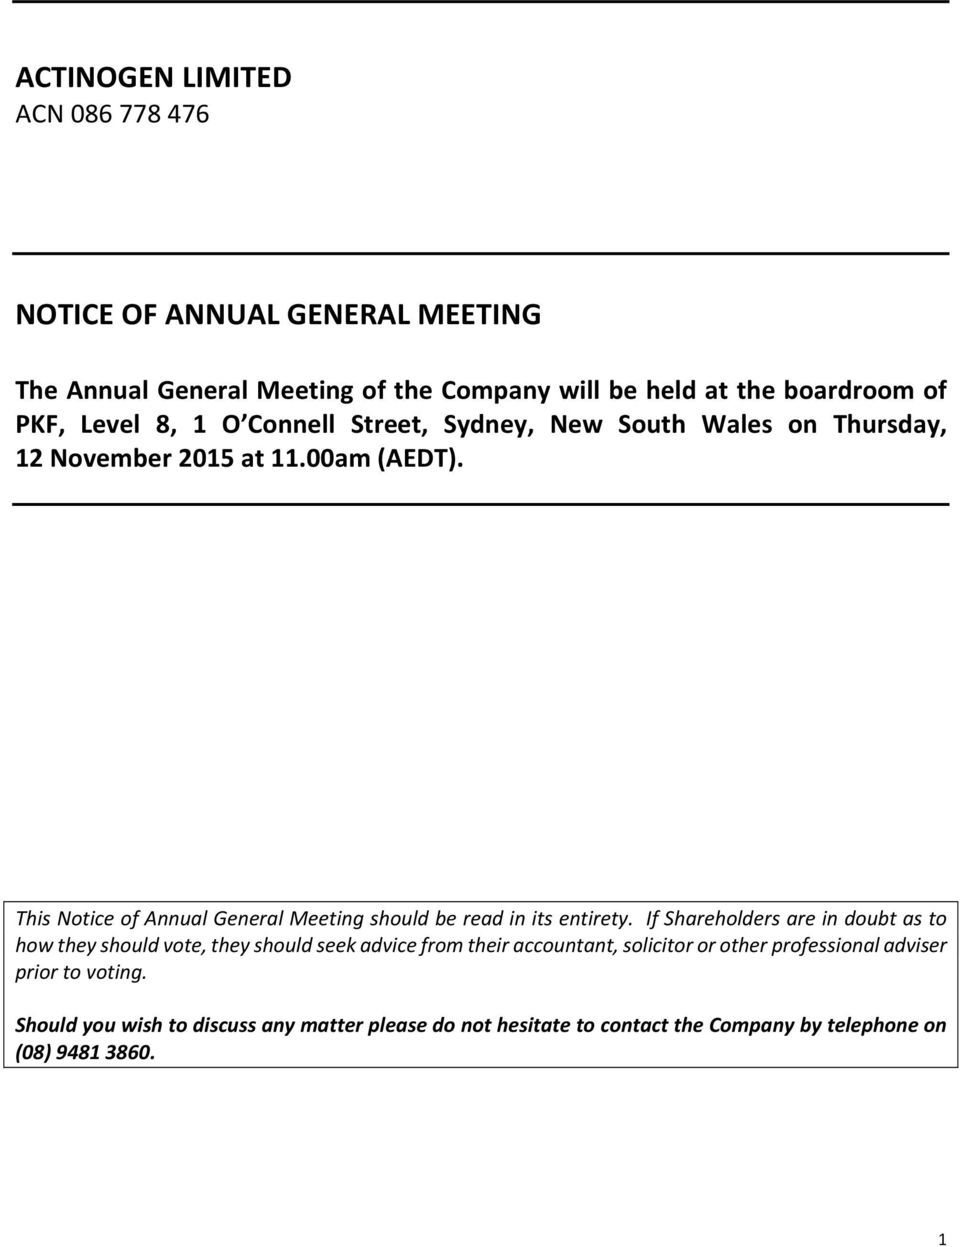 This Notice of Annual General Meeting should be read in its entirety.